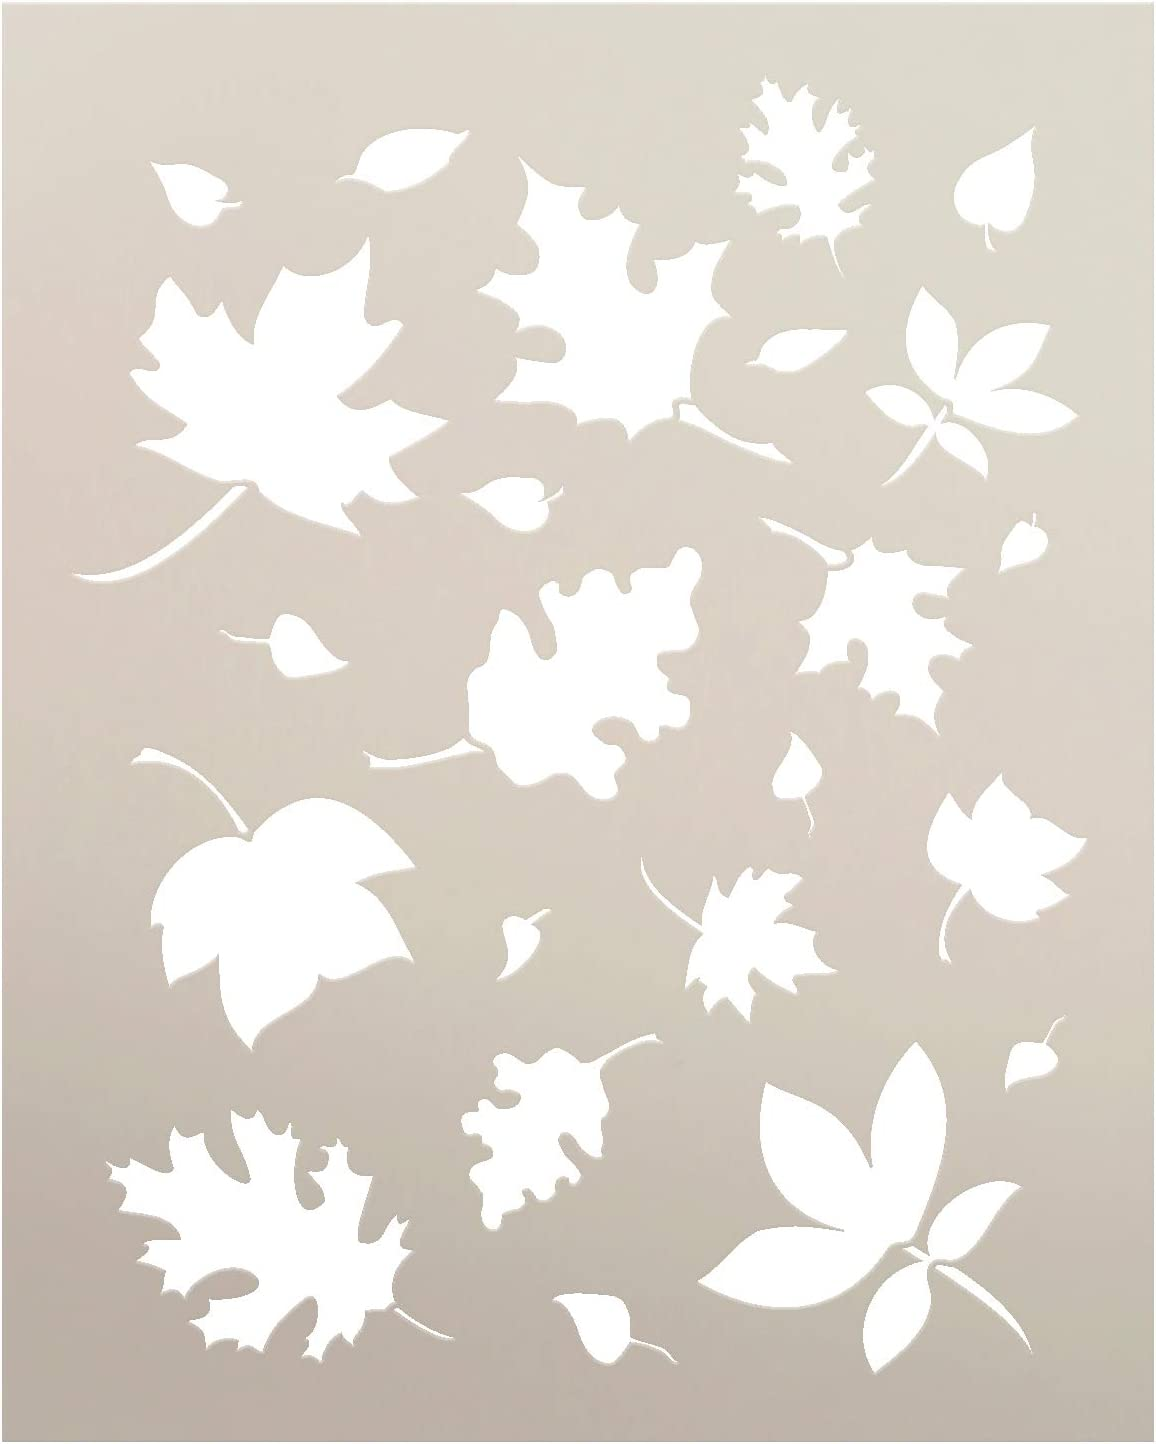 fall template leaf stencil  Harvest Stencil - Fall Leaves Stencil | Autumn Art Reusable Mylar Template  | Painting, Chalk, Mixed Media | Use for Crafting, DIY Home Decor | Select  ...